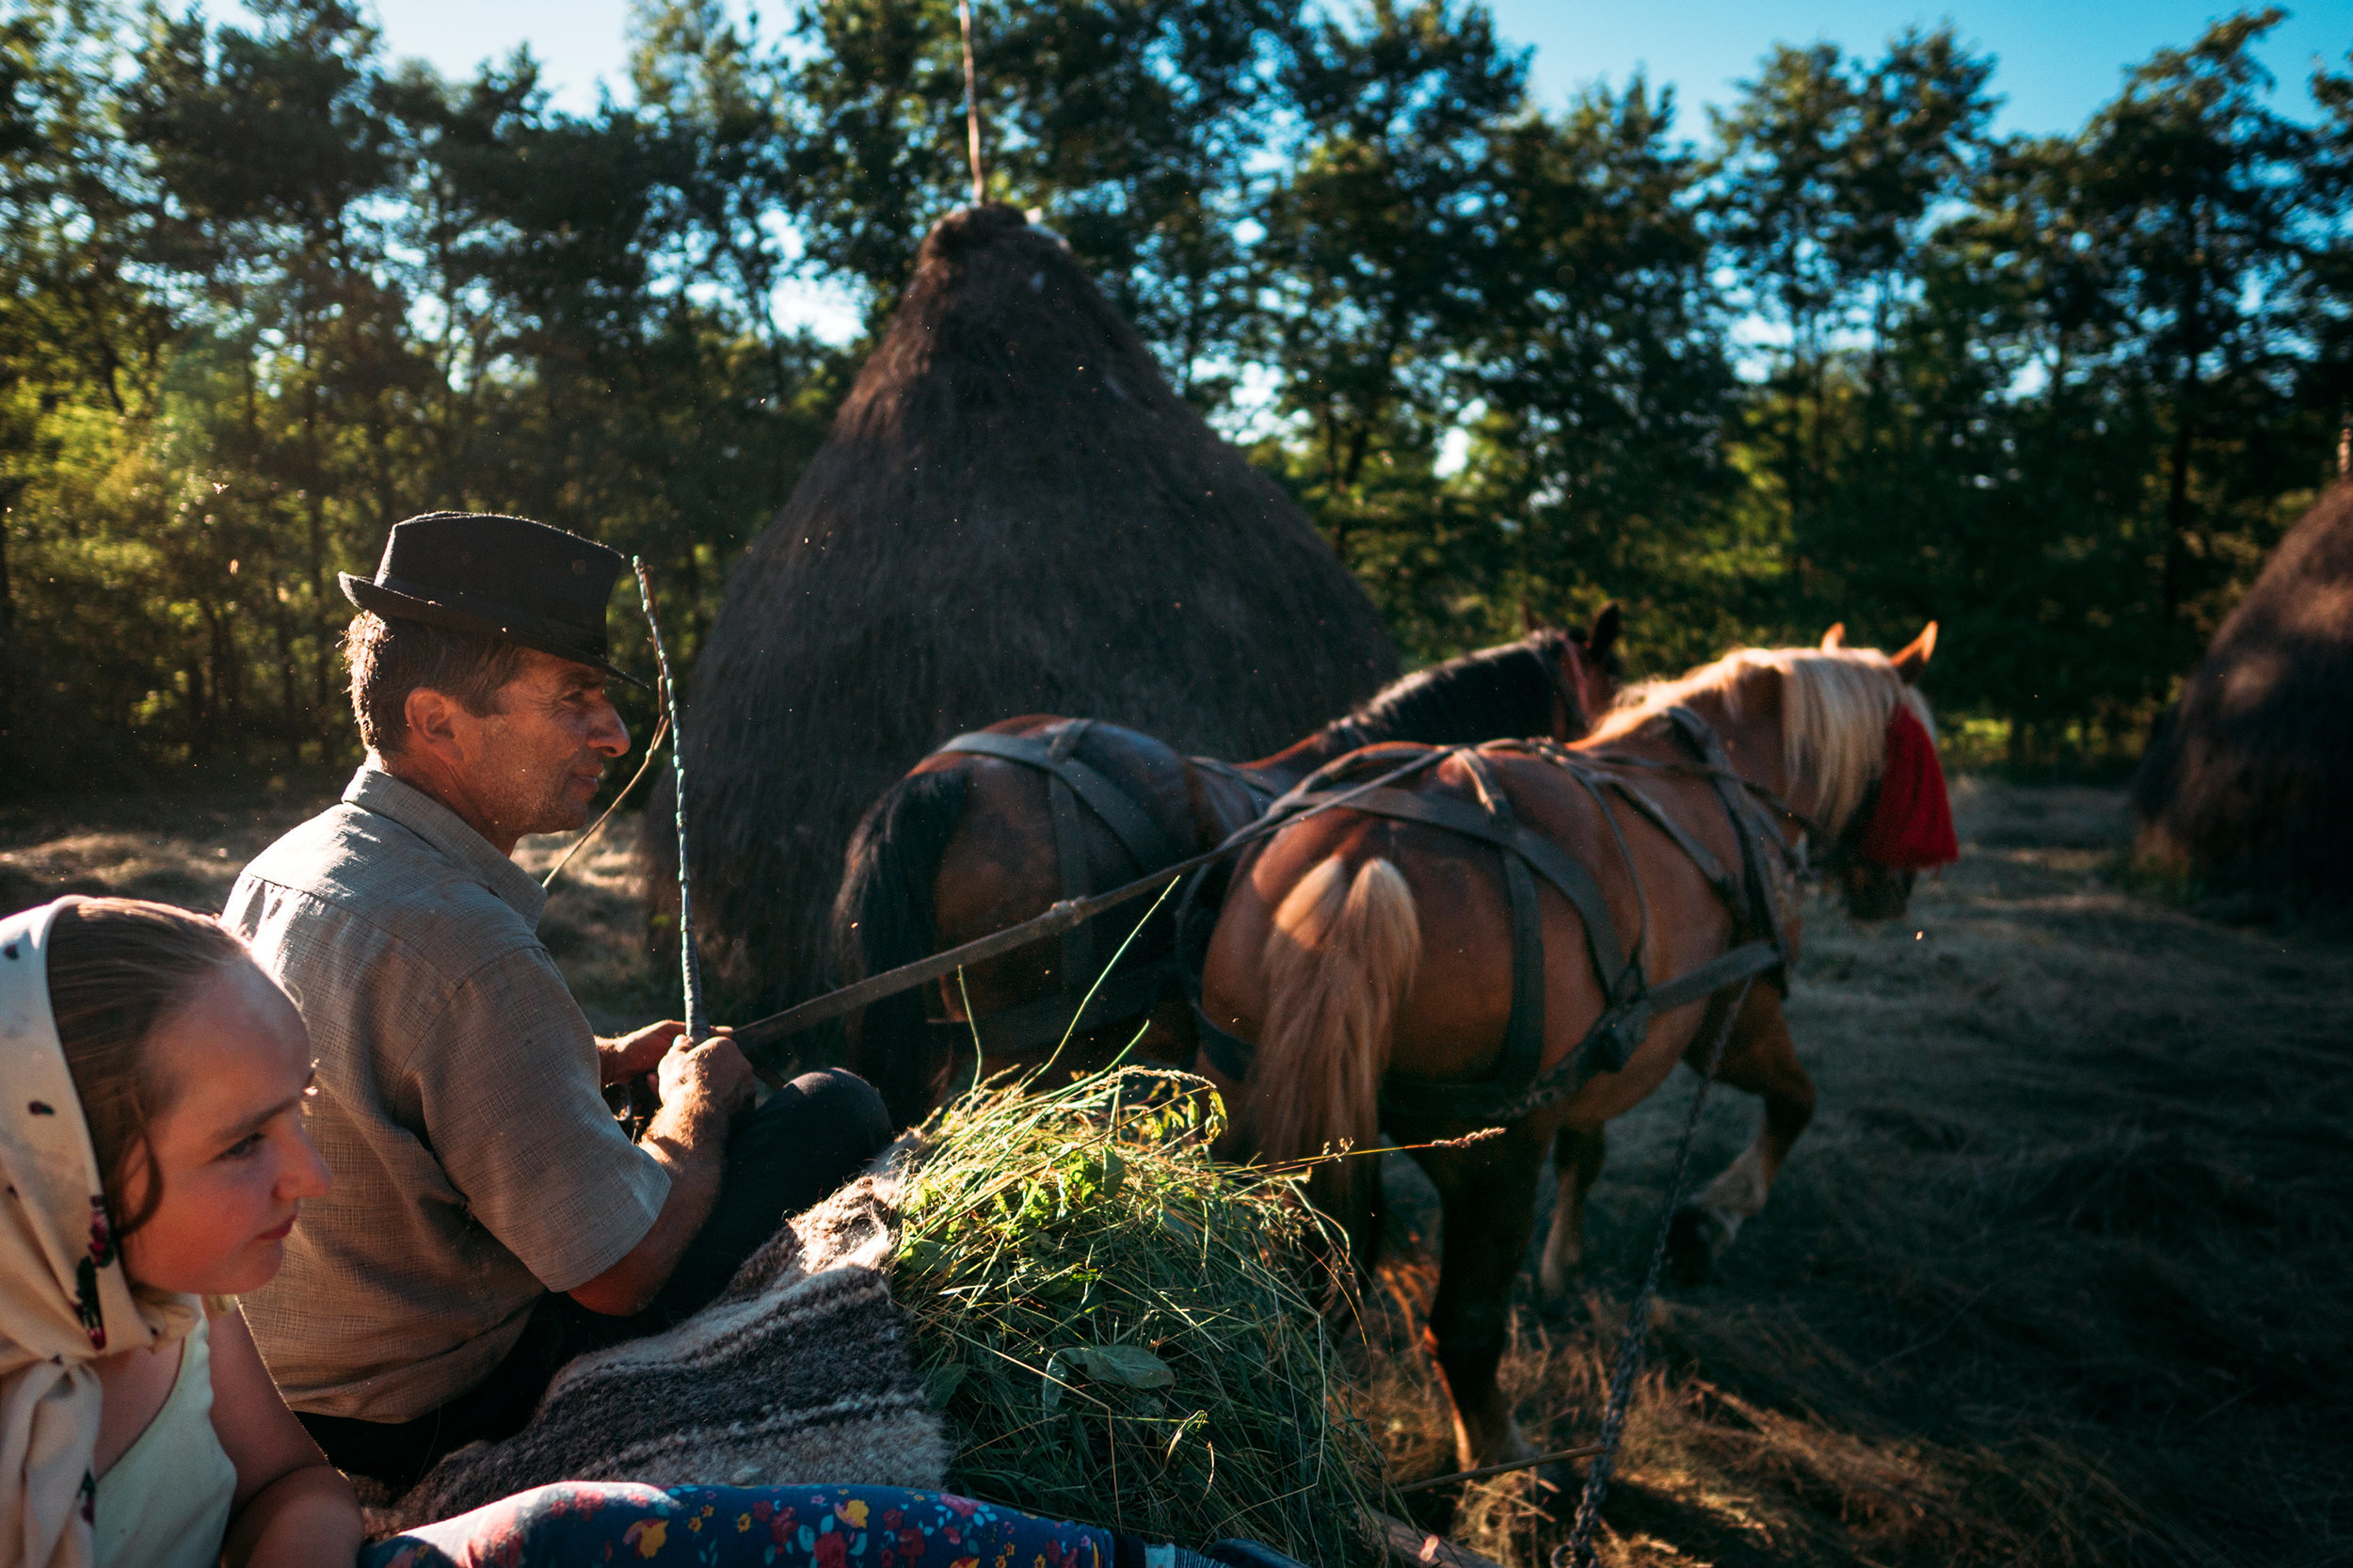 Romania-Maramures-father-and-daughter